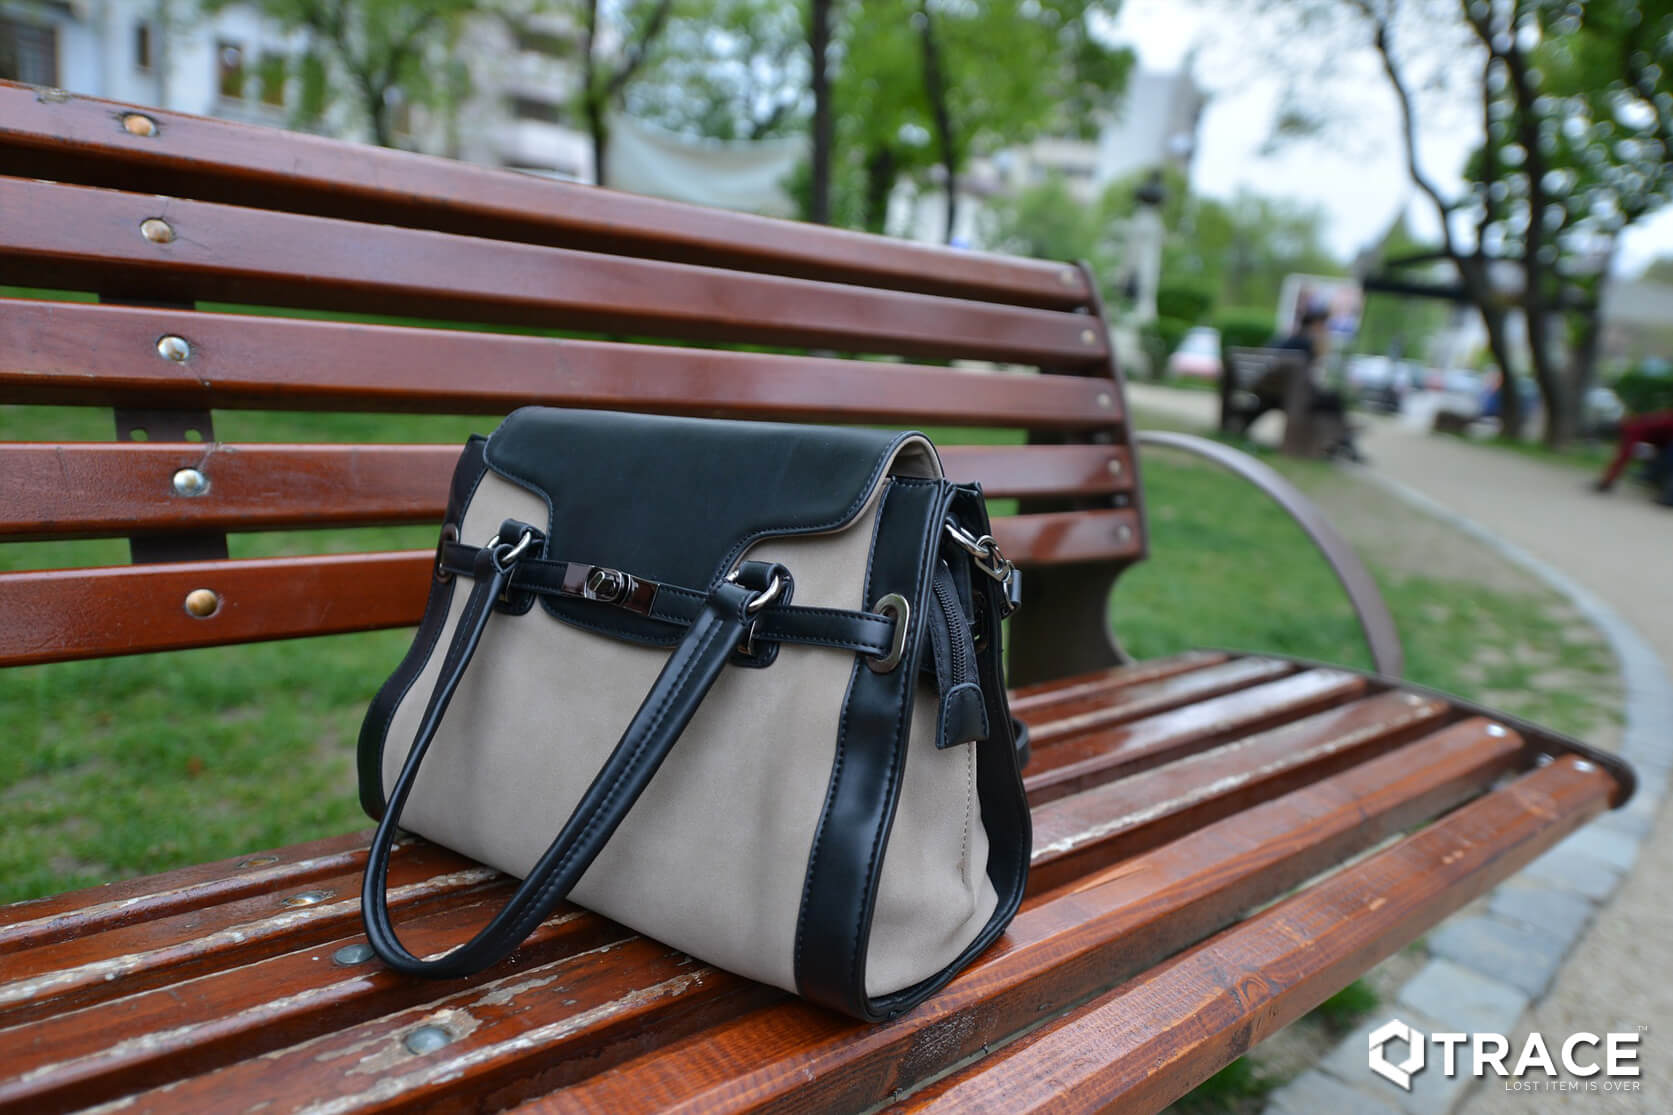 Track Your Lost Purse With The QTrace | Purse Tracker